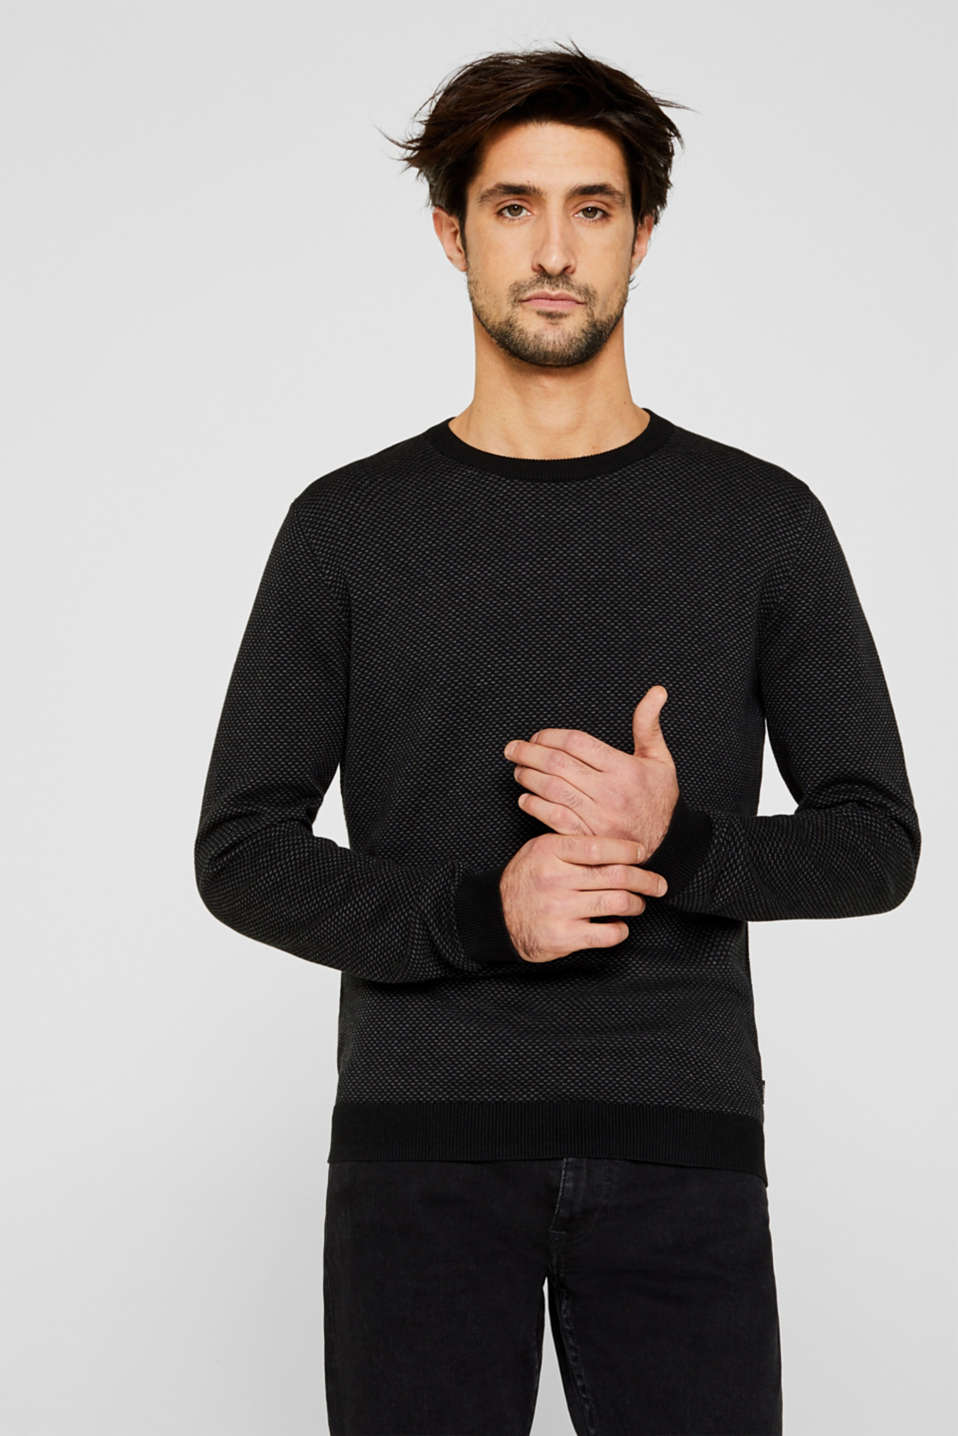 Jacquard jumper made of 100% cotton